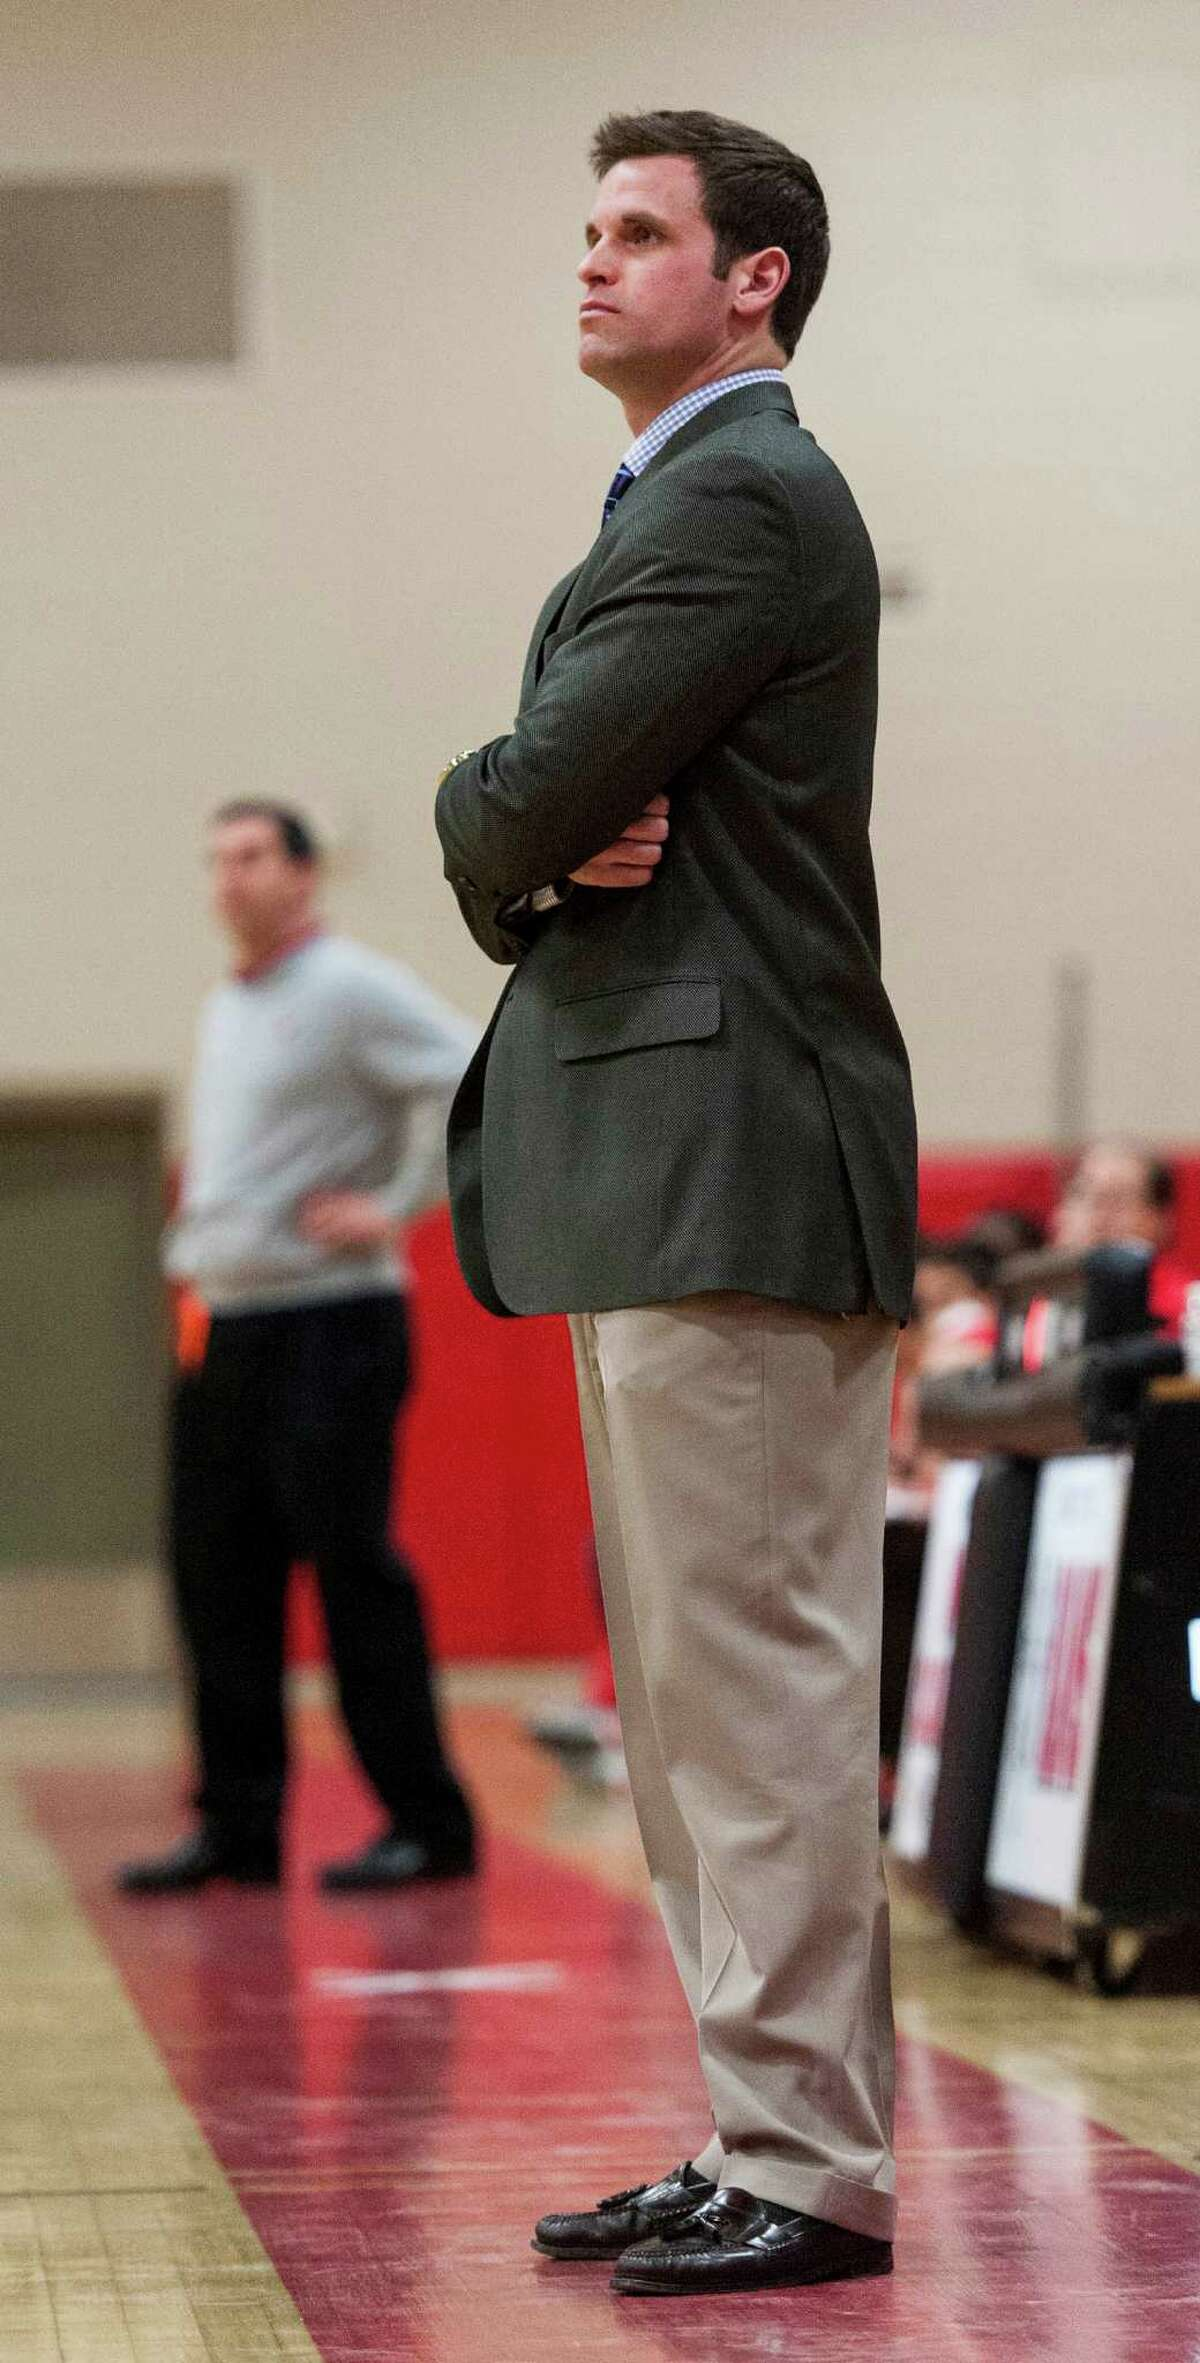 Mike Evans, New Canaan high school boys basketball head coach during a game against Greenwich high school played at New Canaan high school, New Canaan, CT on Monday February 18th, 2013.